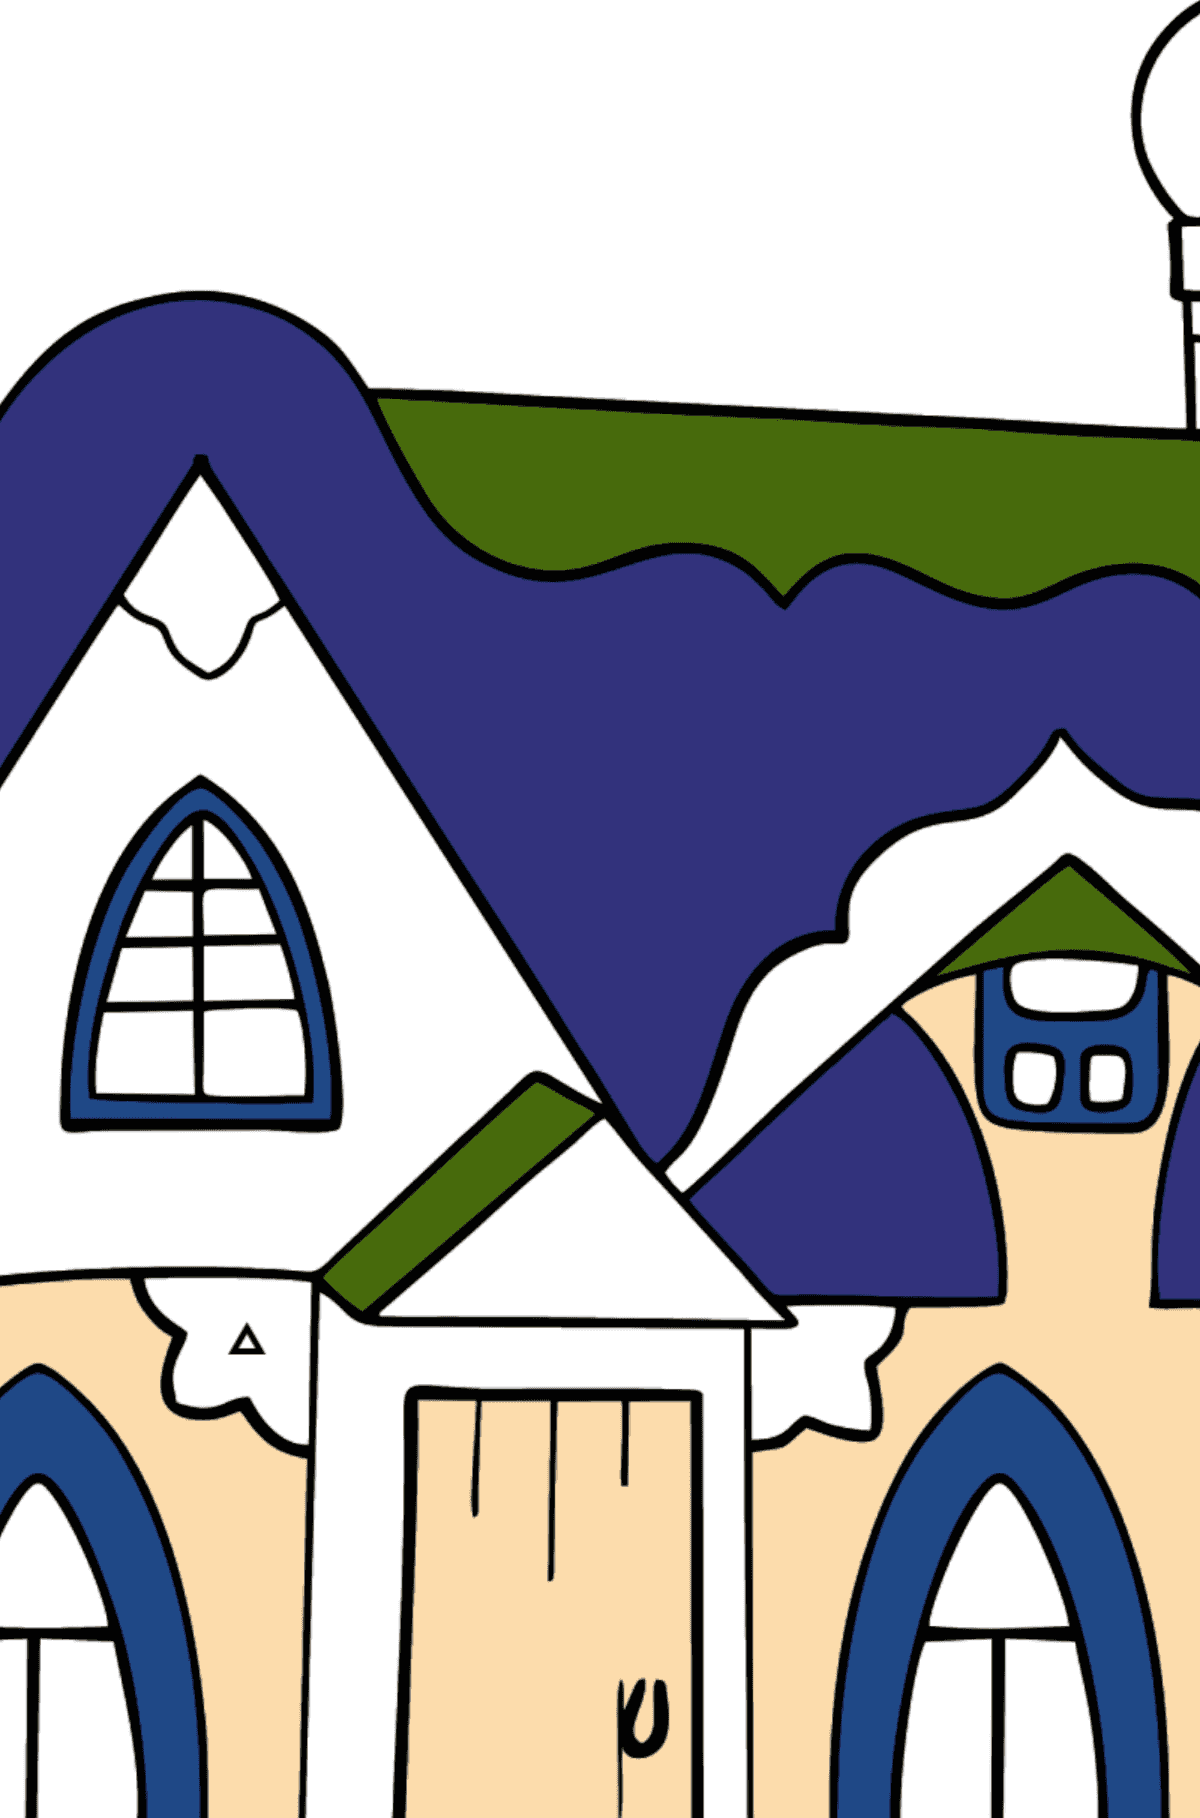 Simple Coloring Page - A Fairytale House - Coloring by Geometric Shapes for Kids